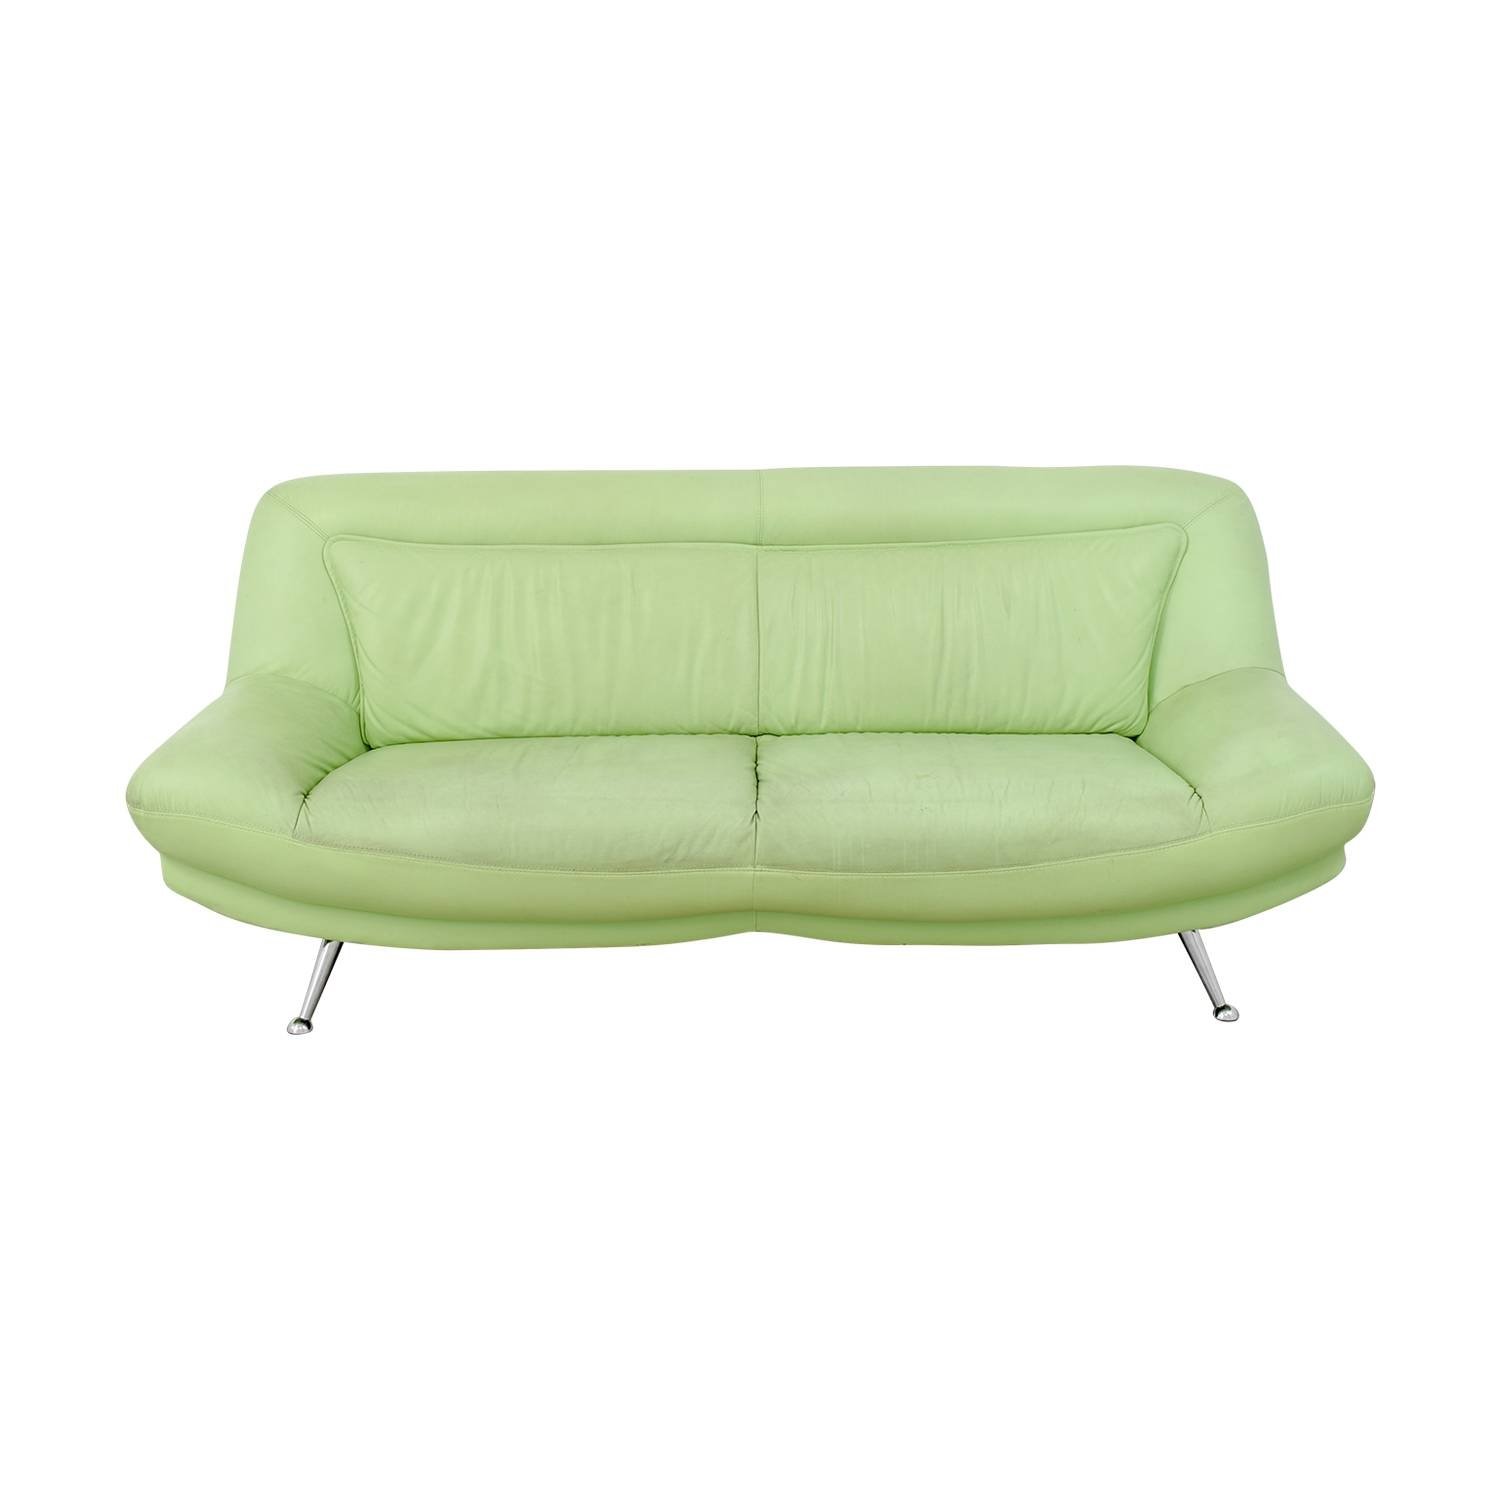 40% Off - Italian Mint Green Leather Two-Cushion Sofa / Sofas inside Mint Green Sofas (Image 2 of 15)